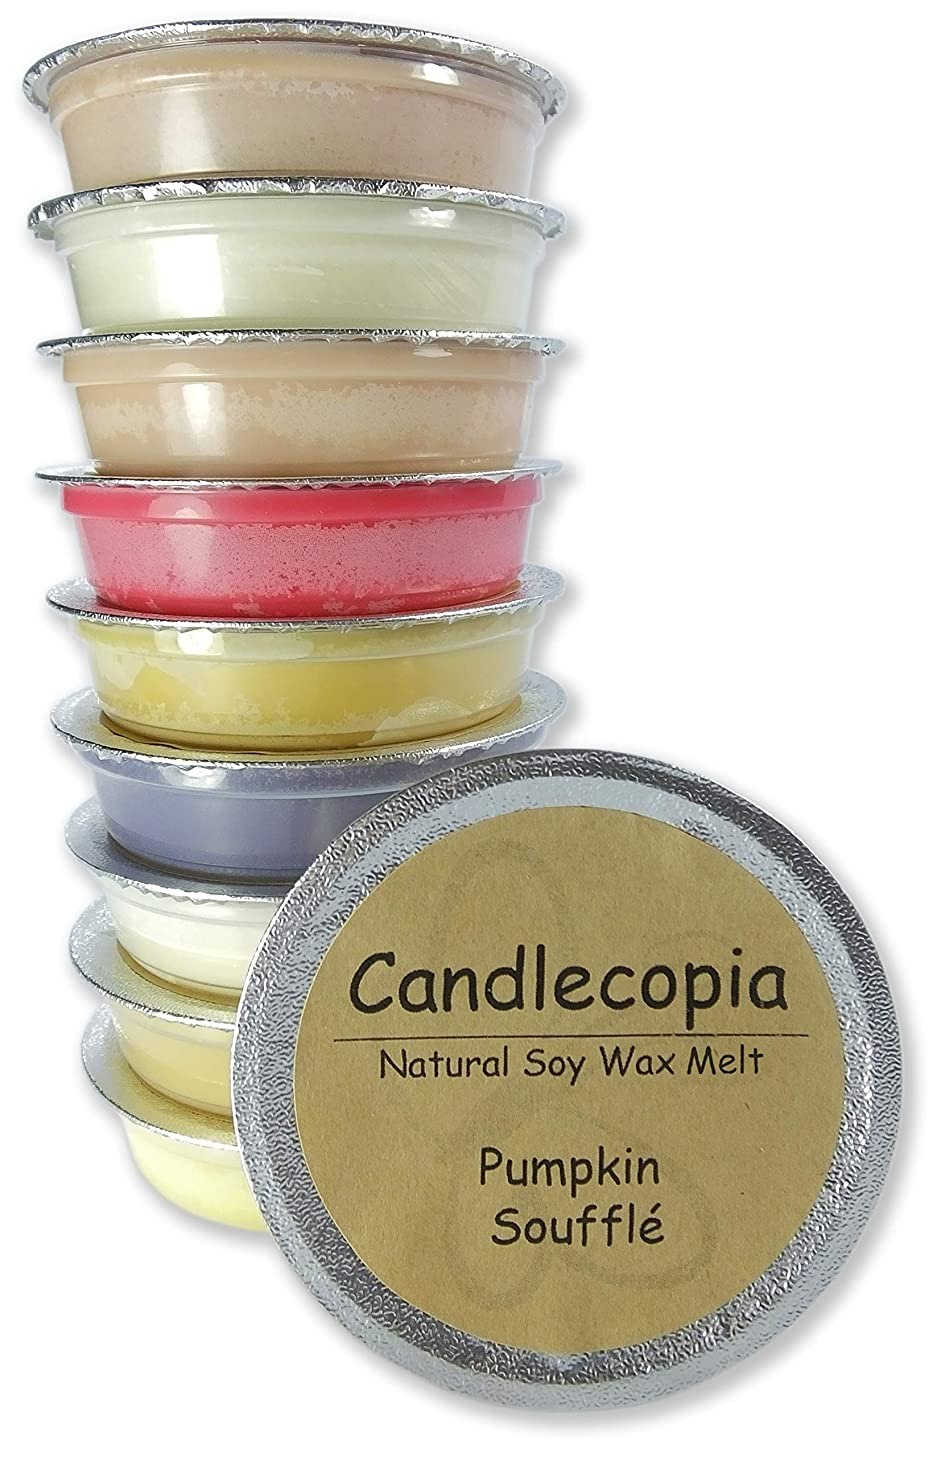 Candlecopia Vanilla Hazelnut, Pumpkin Soufflé, Seriously Cinnamon, Baked Apple Pie and More! Strongly Scented Hand Poured Premium Natural Soy Wax Melt Cups, 12.5 Ounces in 10 x 1.25 Ounce Sealed Cups